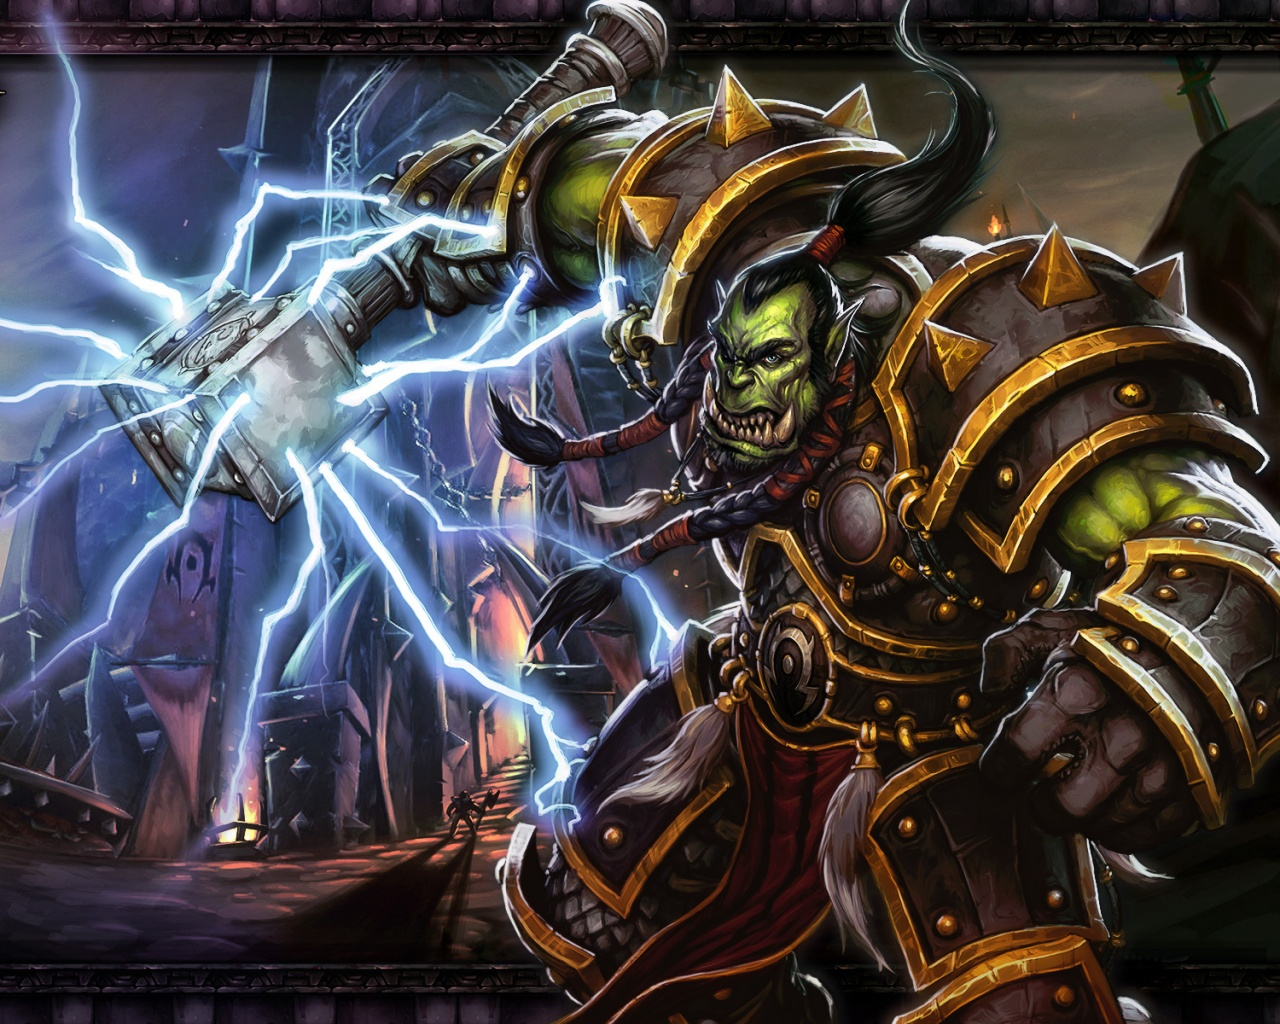 B Warcraft3FT/b.b info /b- Все для Warcraft 3, DotA - скачать.